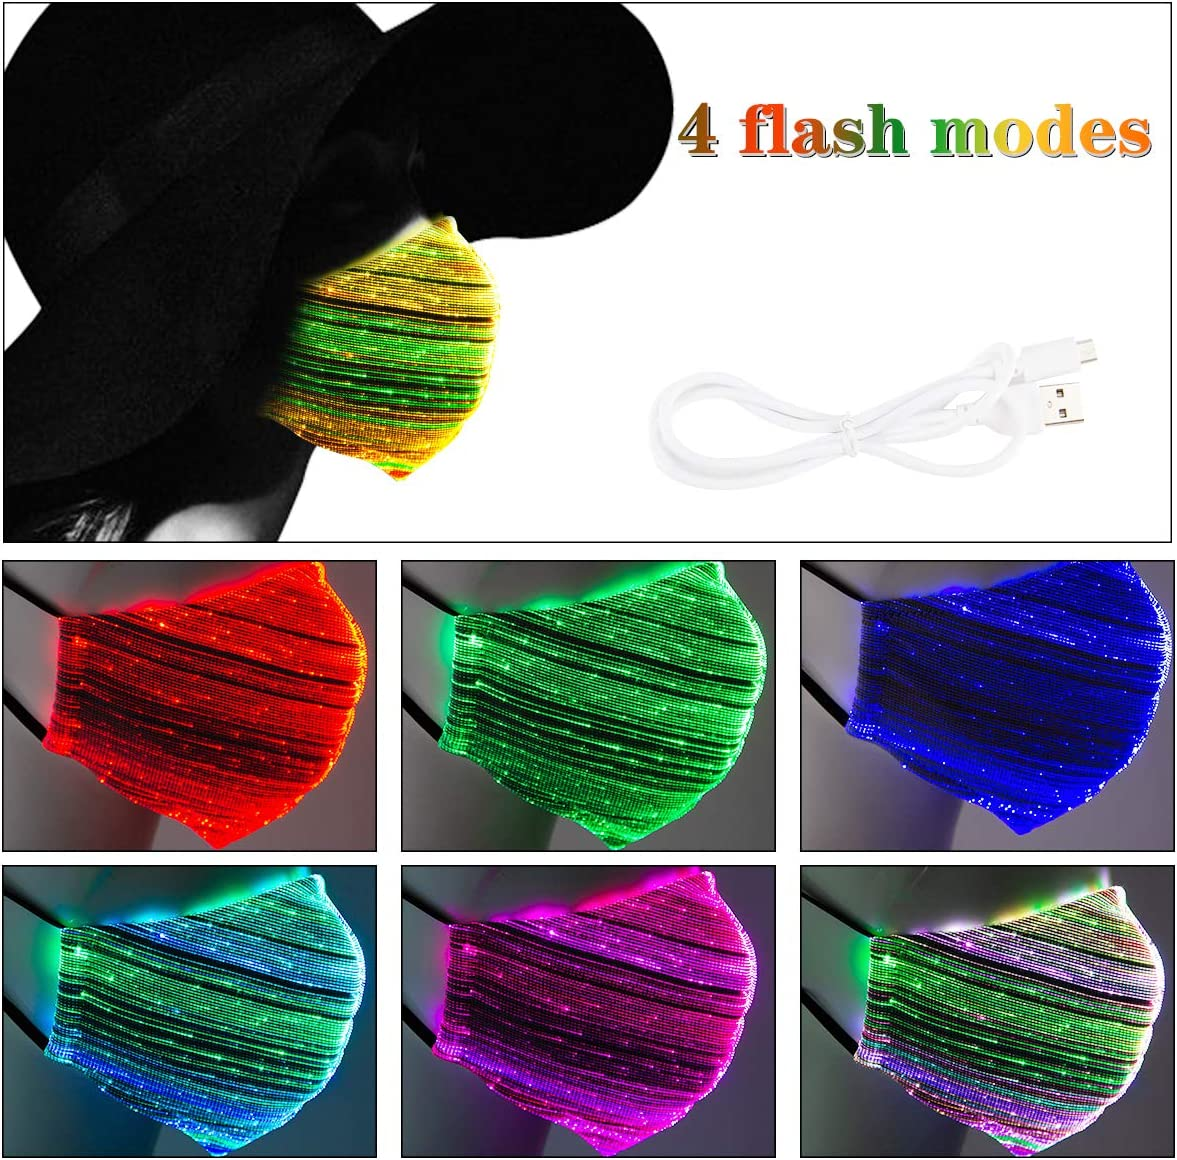 7 Colors Luminous Glowing Costume Mask for Halloween Christmas Parties Festival Rave Masquerade Costumes 4 Flash Modes 1 Pieces Grey LED Light UP Costumes Mask